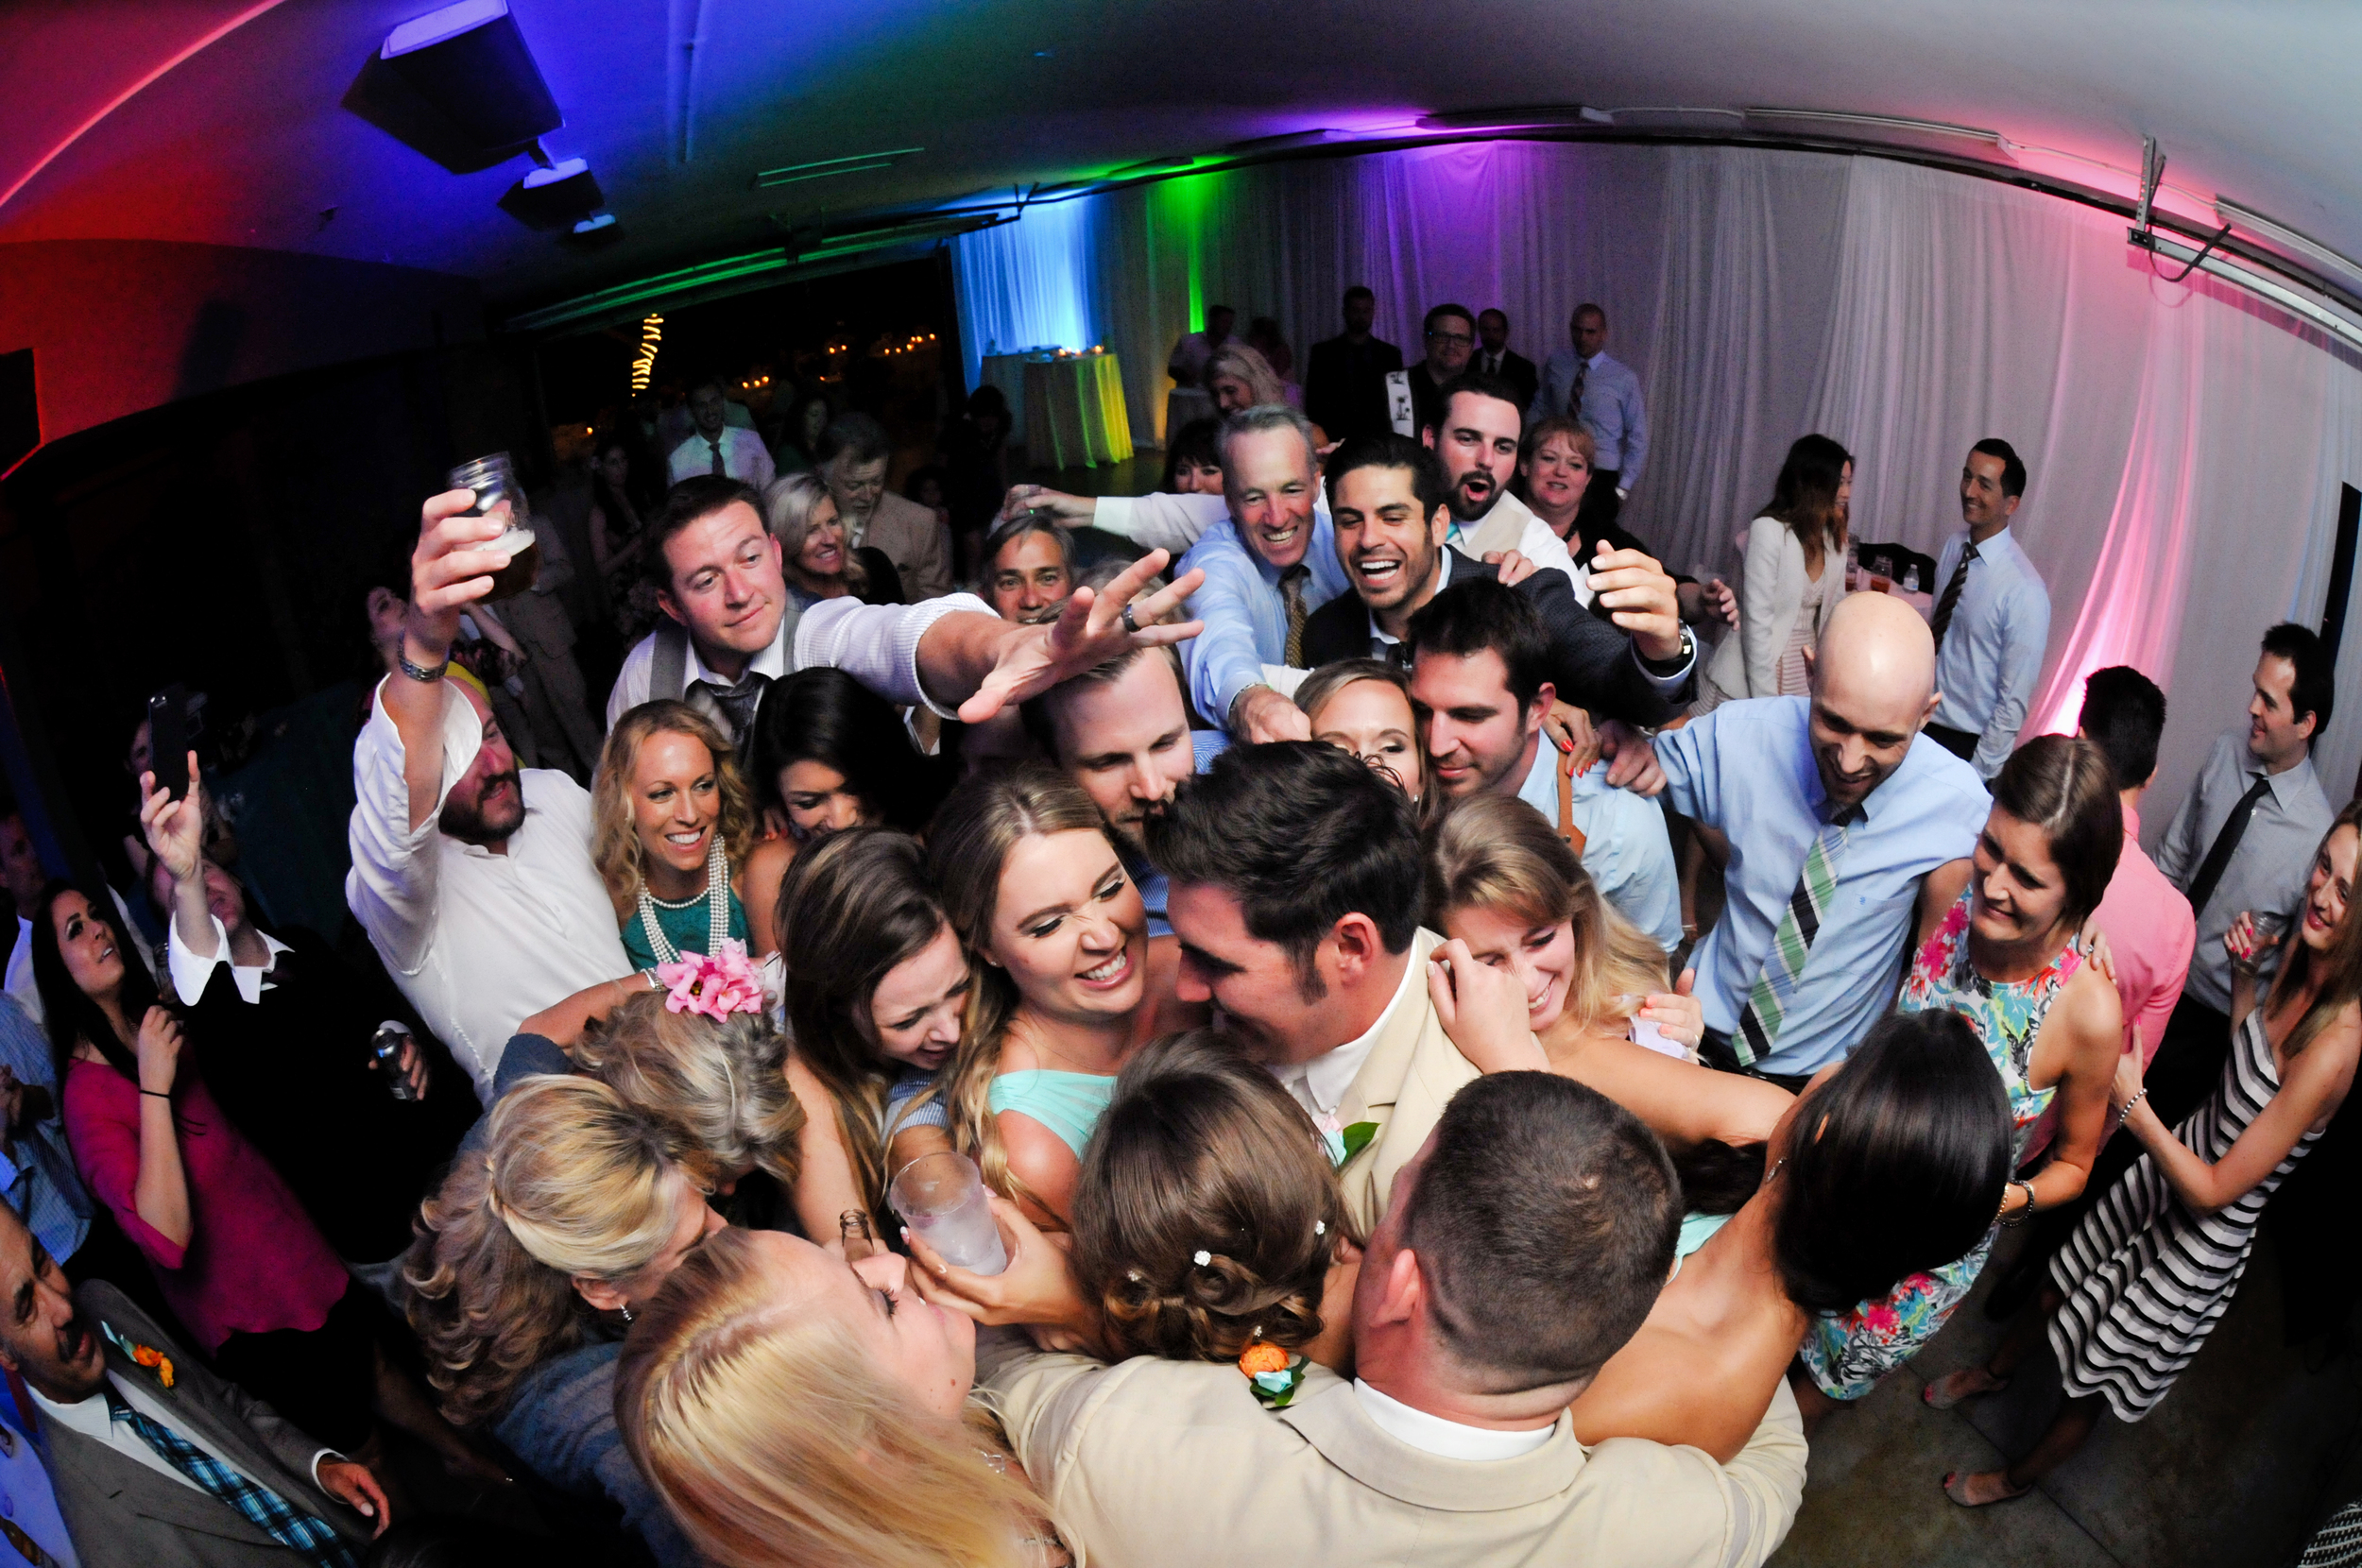 Your last dance should be punctuated by moments like this, your friends and family all surrounding you and your new bride/groom in one big group hug.